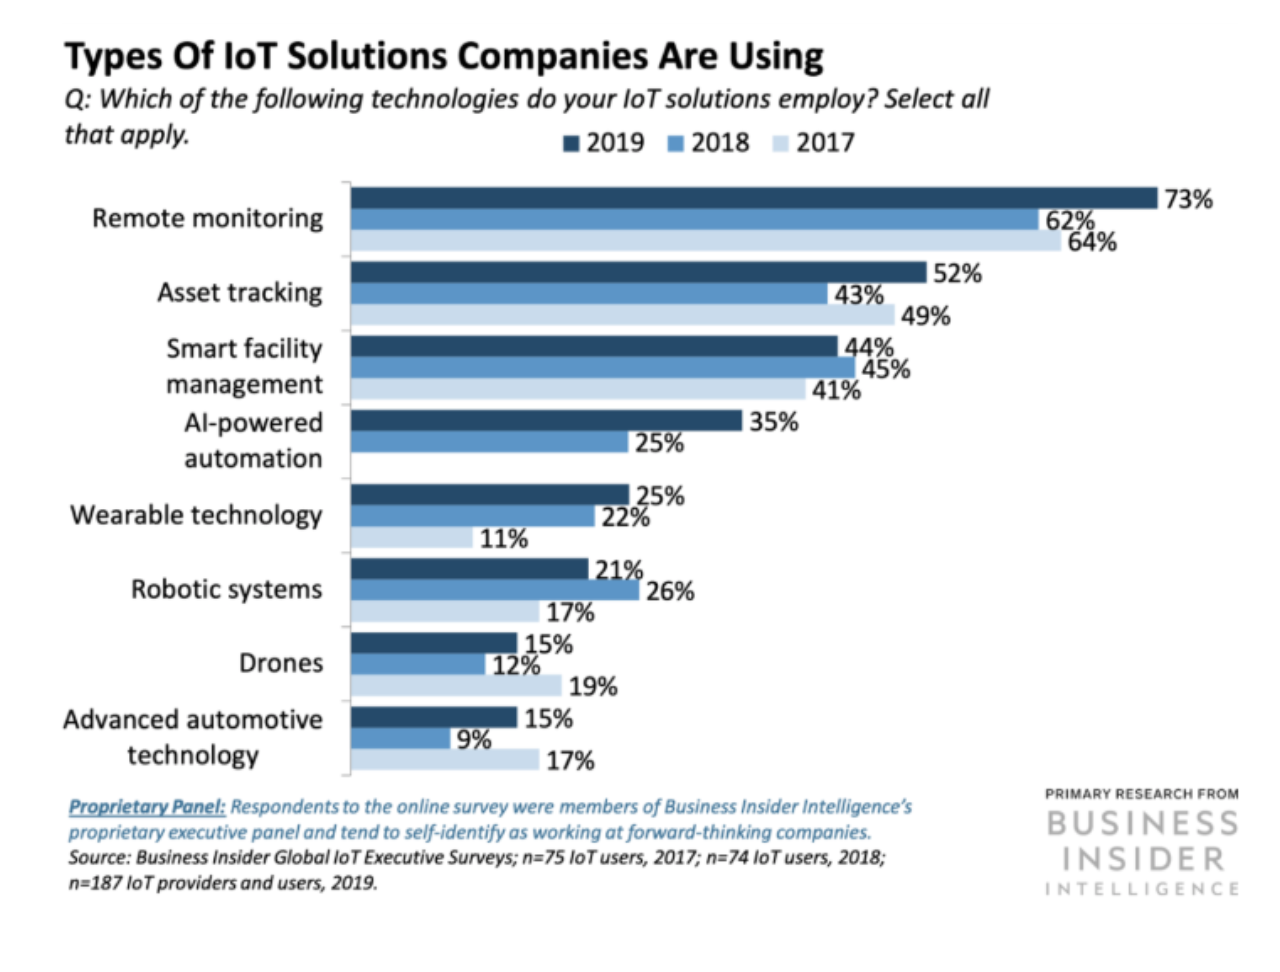 types of IoT solutions companies are using in 2020